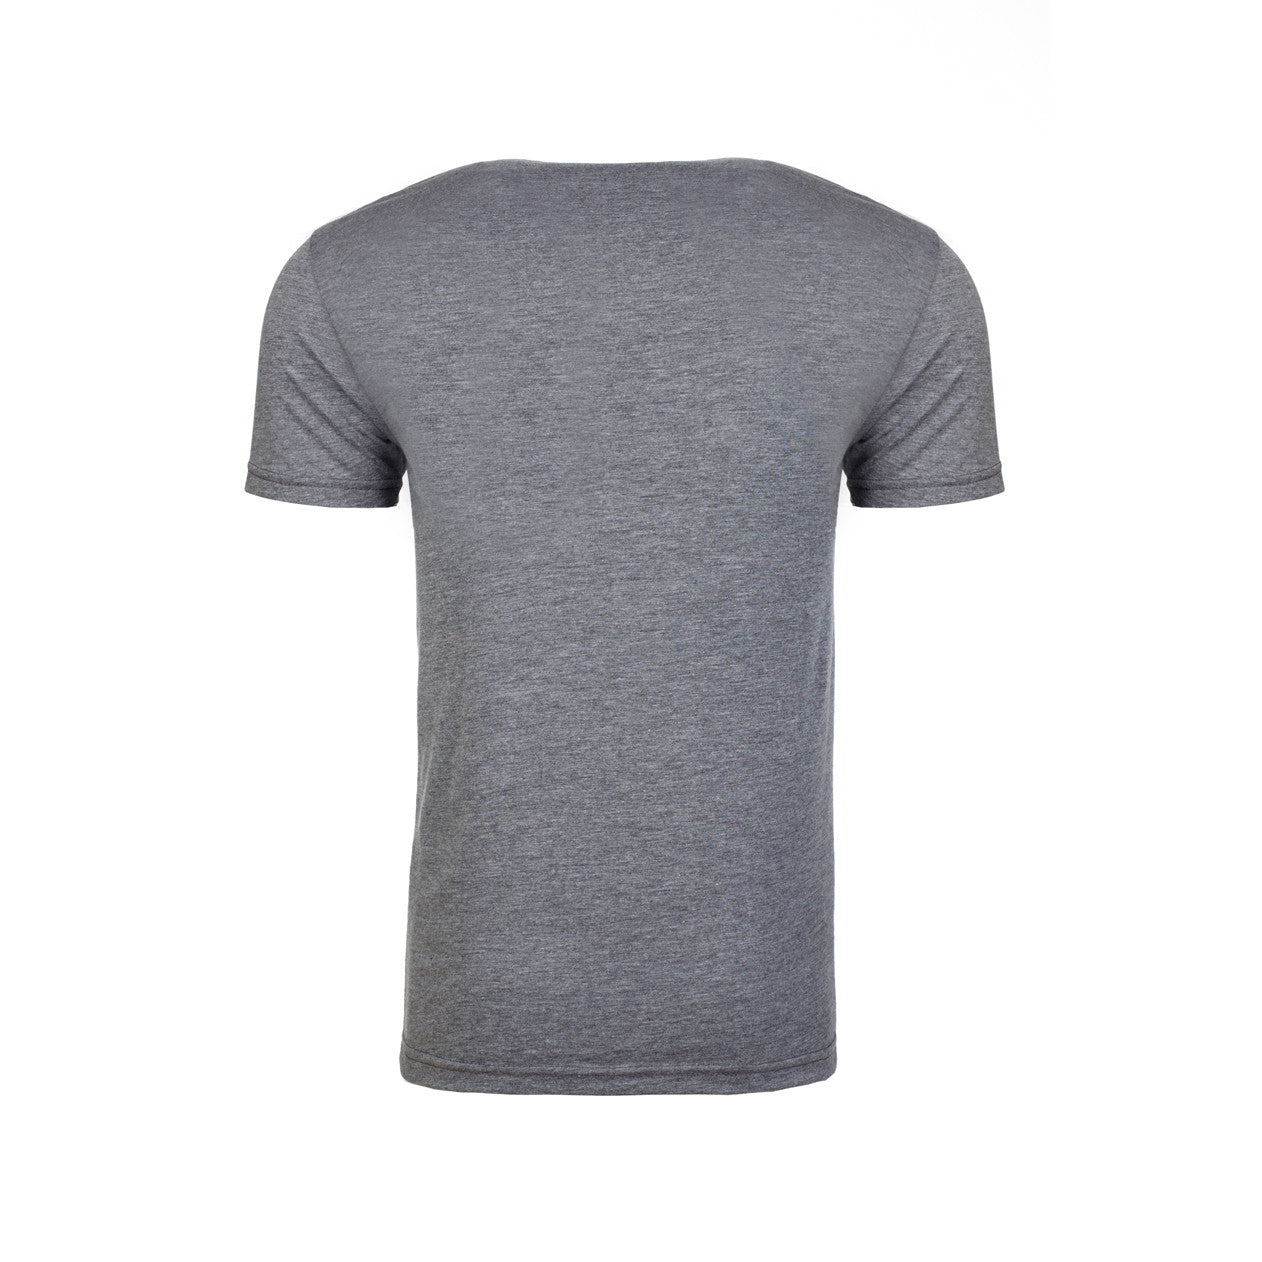 Men's Tri-Blend Crew Neck T-shirt